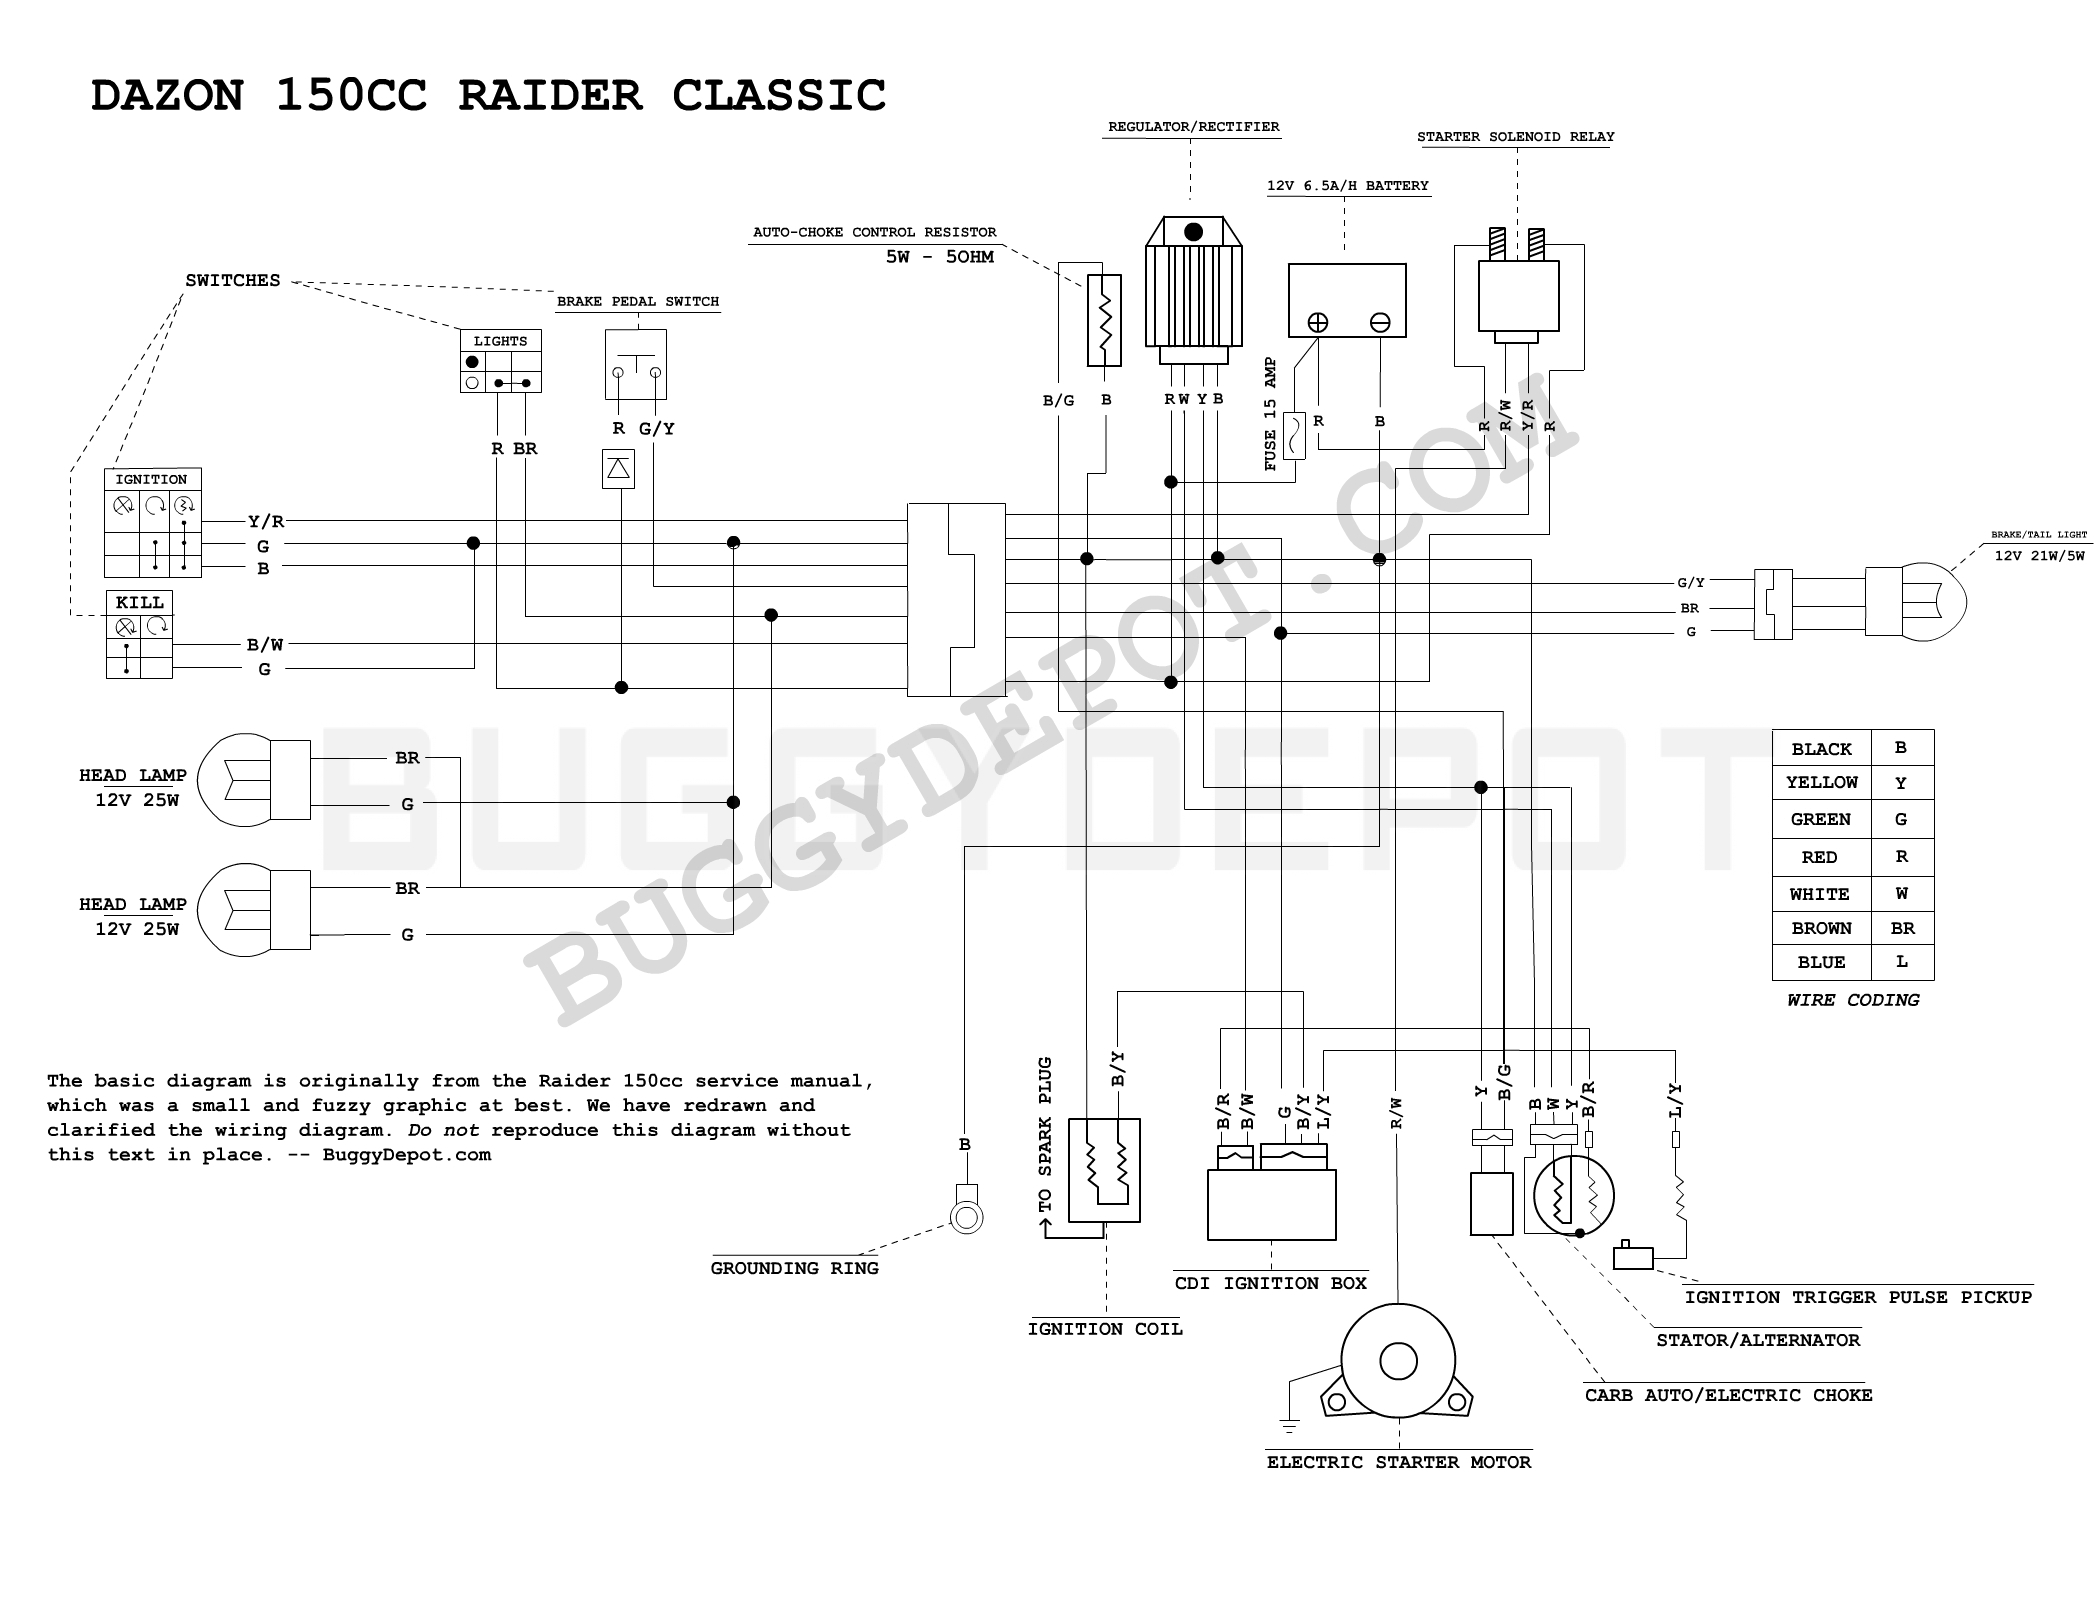 dazon raider classic wiring diagram buggy depot technical center rh buggydepot com ATV CDI Wiring Diagrams Kill Switch Wiring Diagram